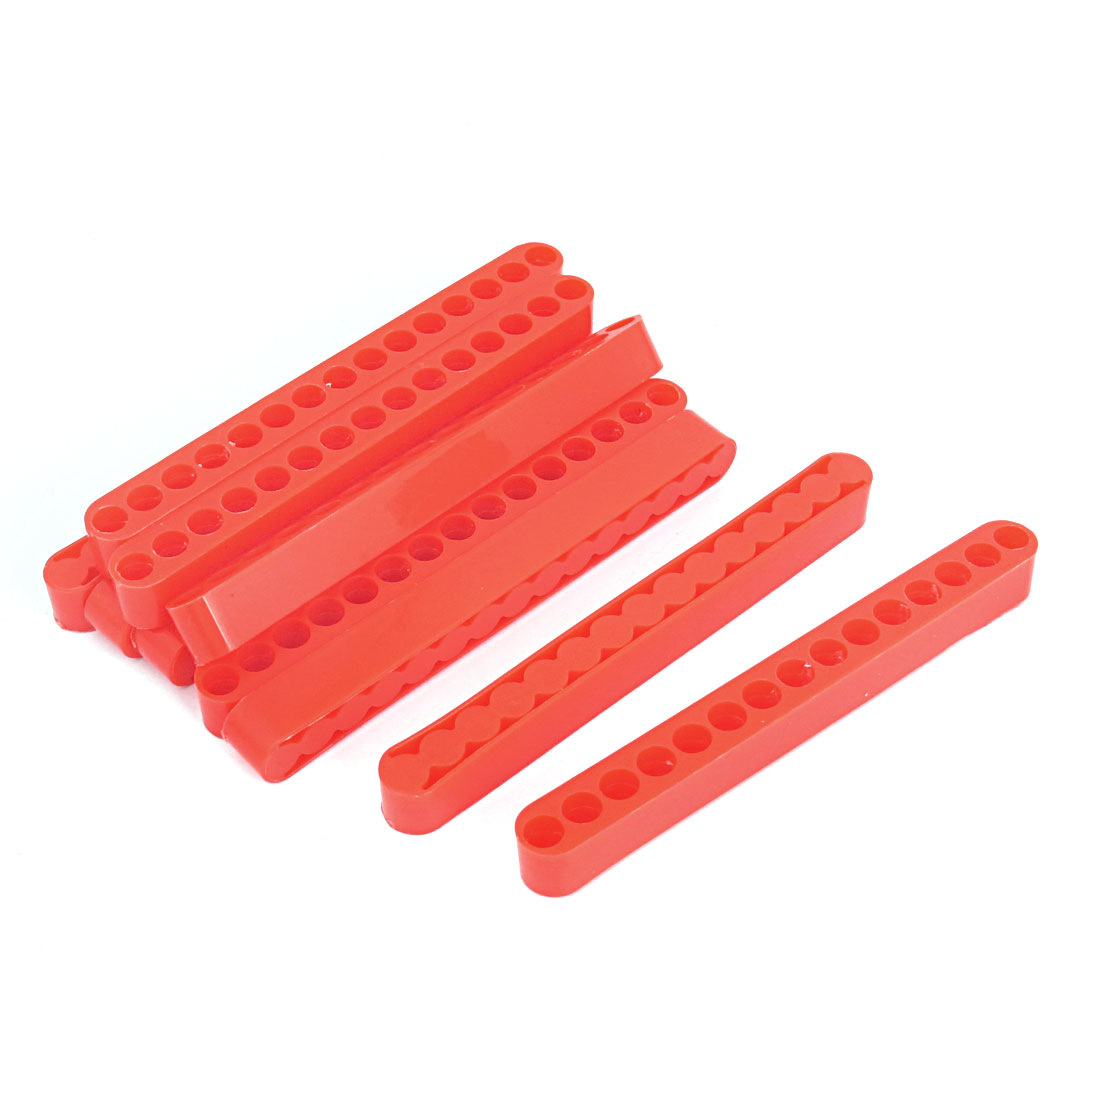 126mm Length 7mm Dia 15 Holes Screwdriver Bit Holder Block Red 10 Pcs